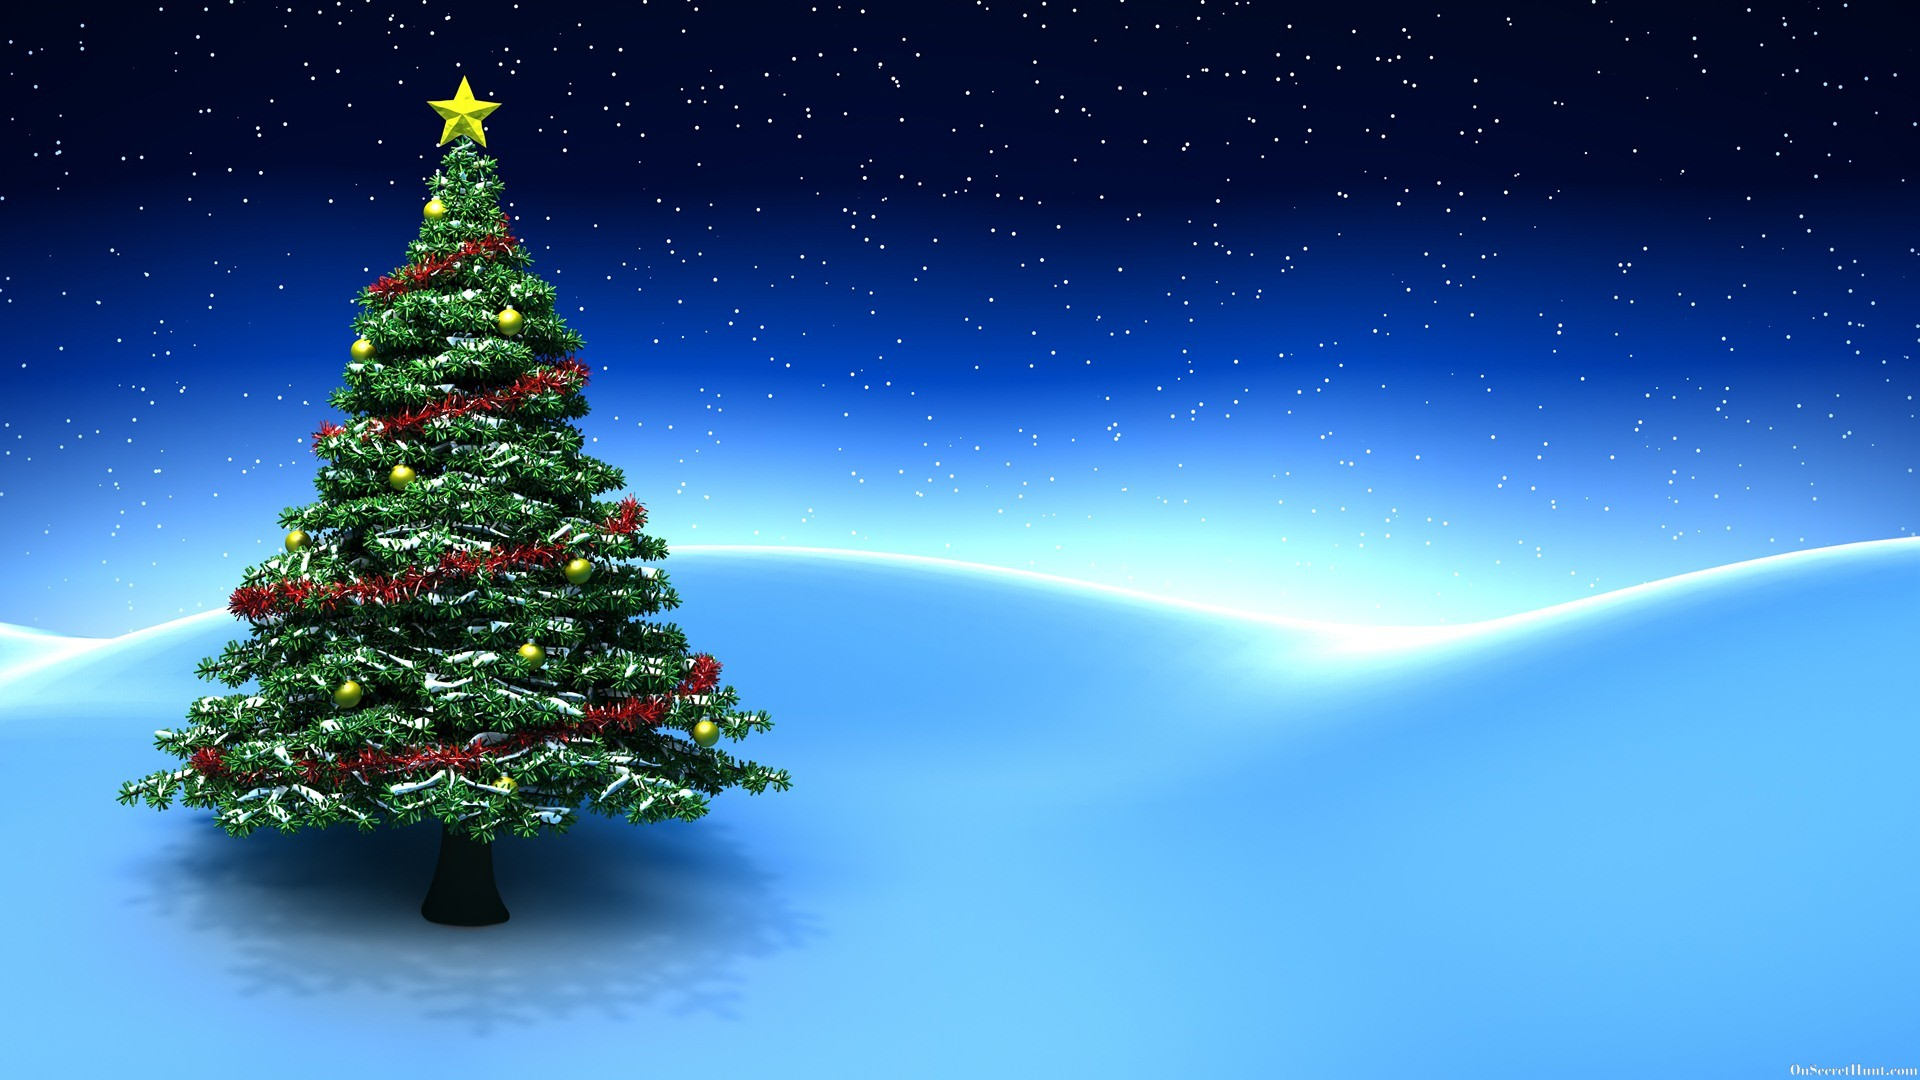 Christmas Tree Background Images - Trends in USA